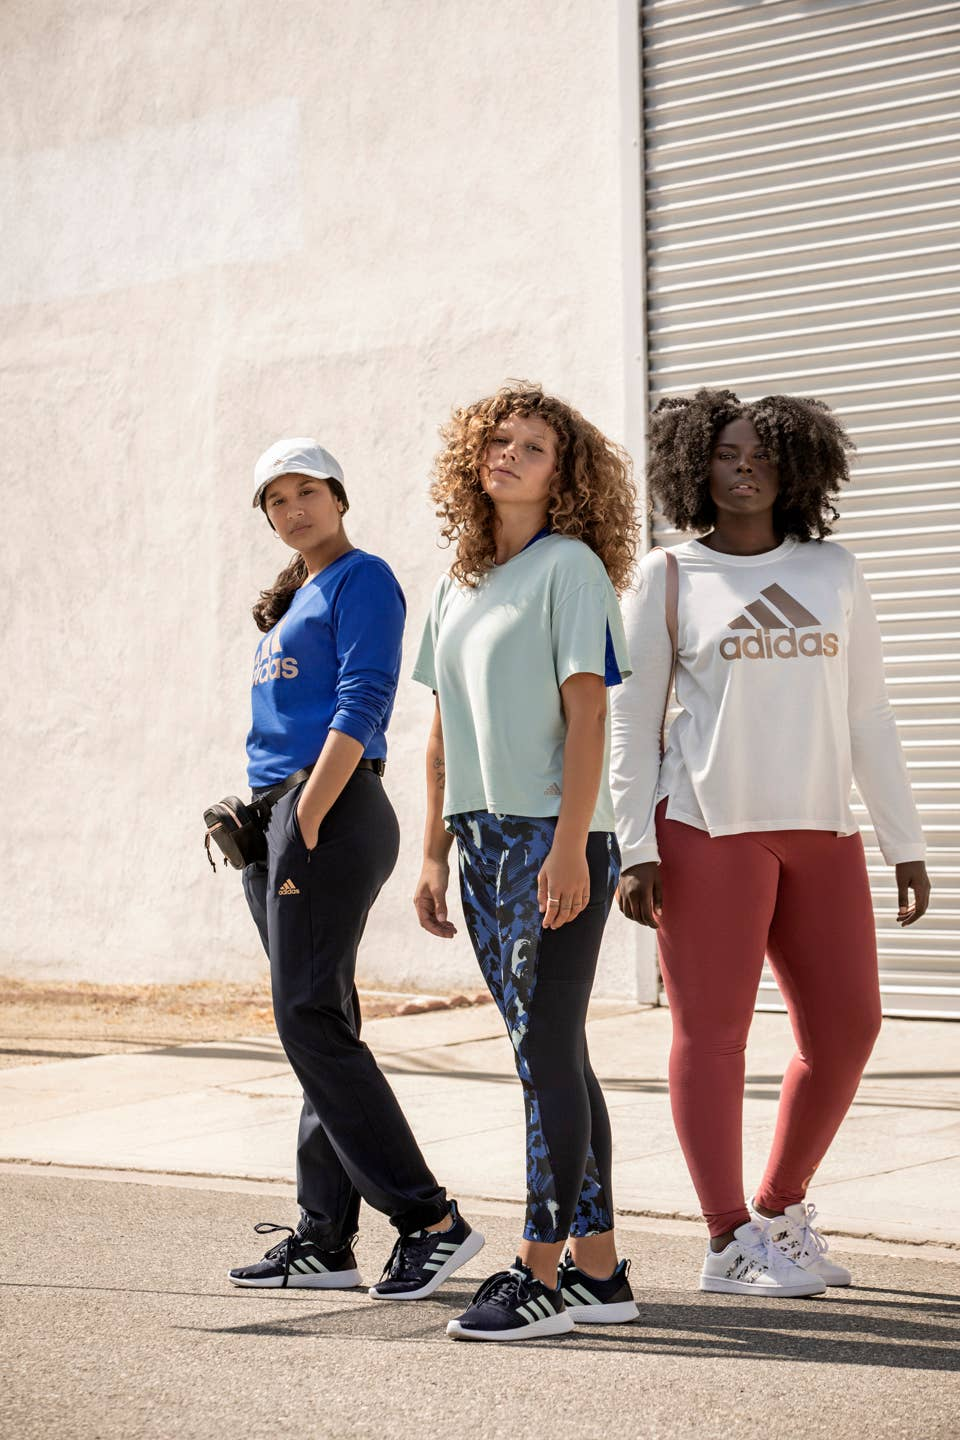 Zoe Saldana x adidas Collection Coming to Kohl's